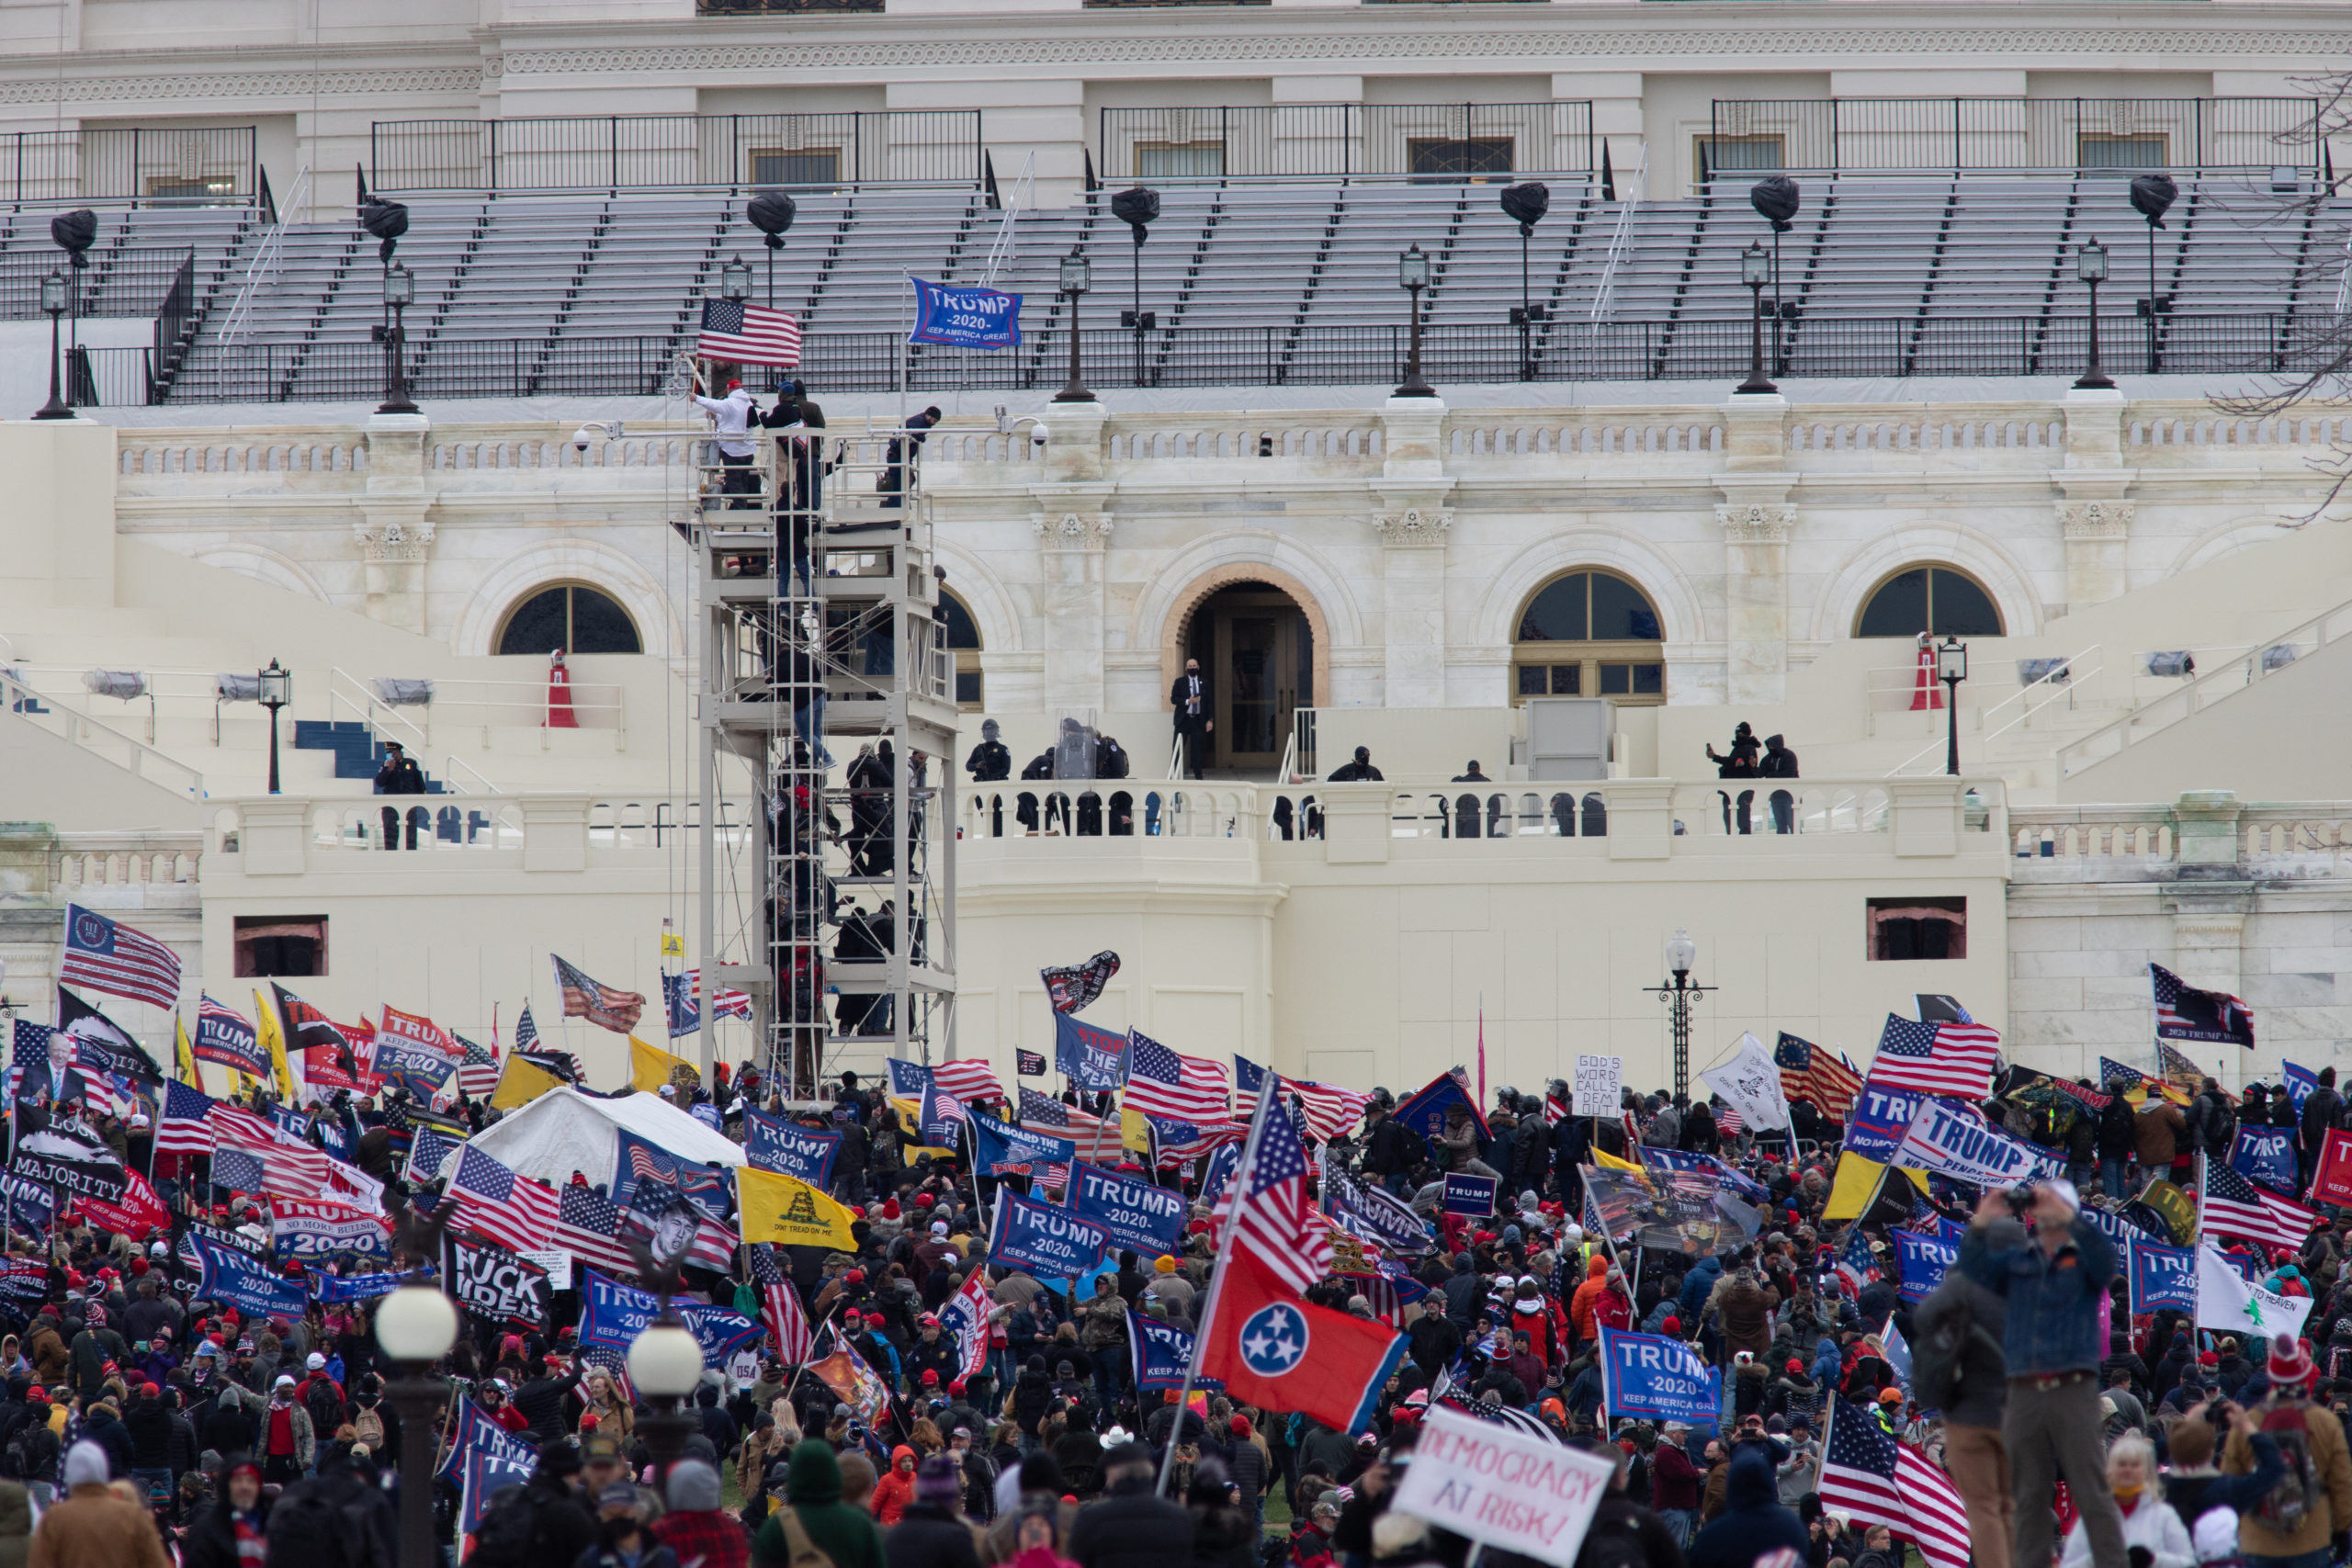 Pro-Trump demonstrators scaled the media tower set up for Inauguration Day in Washington, D.C. on Jan. 6, 2021. (Kaylee Greenlee – Daily Caller News Foundation)